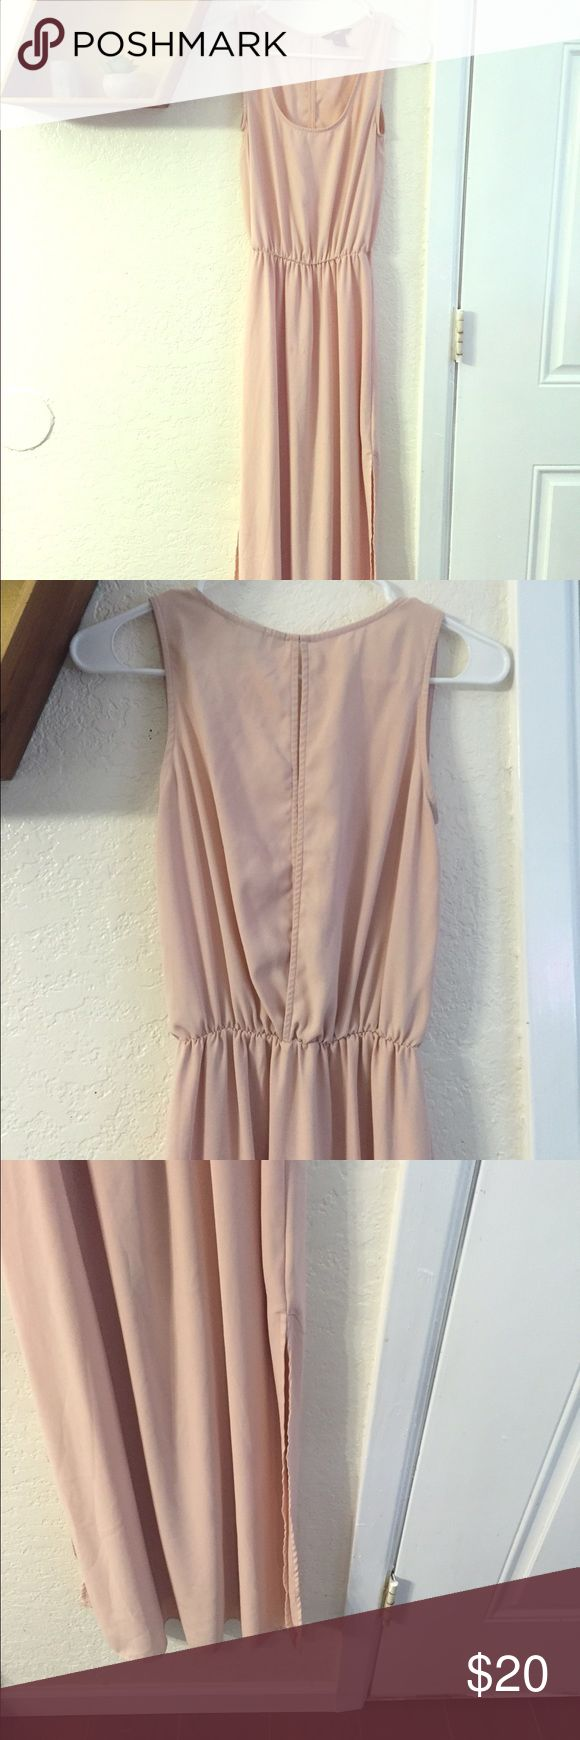 Beautiful Blush Maxi Bridesmaid Dress From H&M, size 4 (S). Purchased and had taken in professionally. Maxi length, side slits go to about the knee. Can be dressed up or down with ease. Only flaw is very small water stain on front, untreated. Visible laid flat but hard to spot when worn. H&M Dresses Maxi